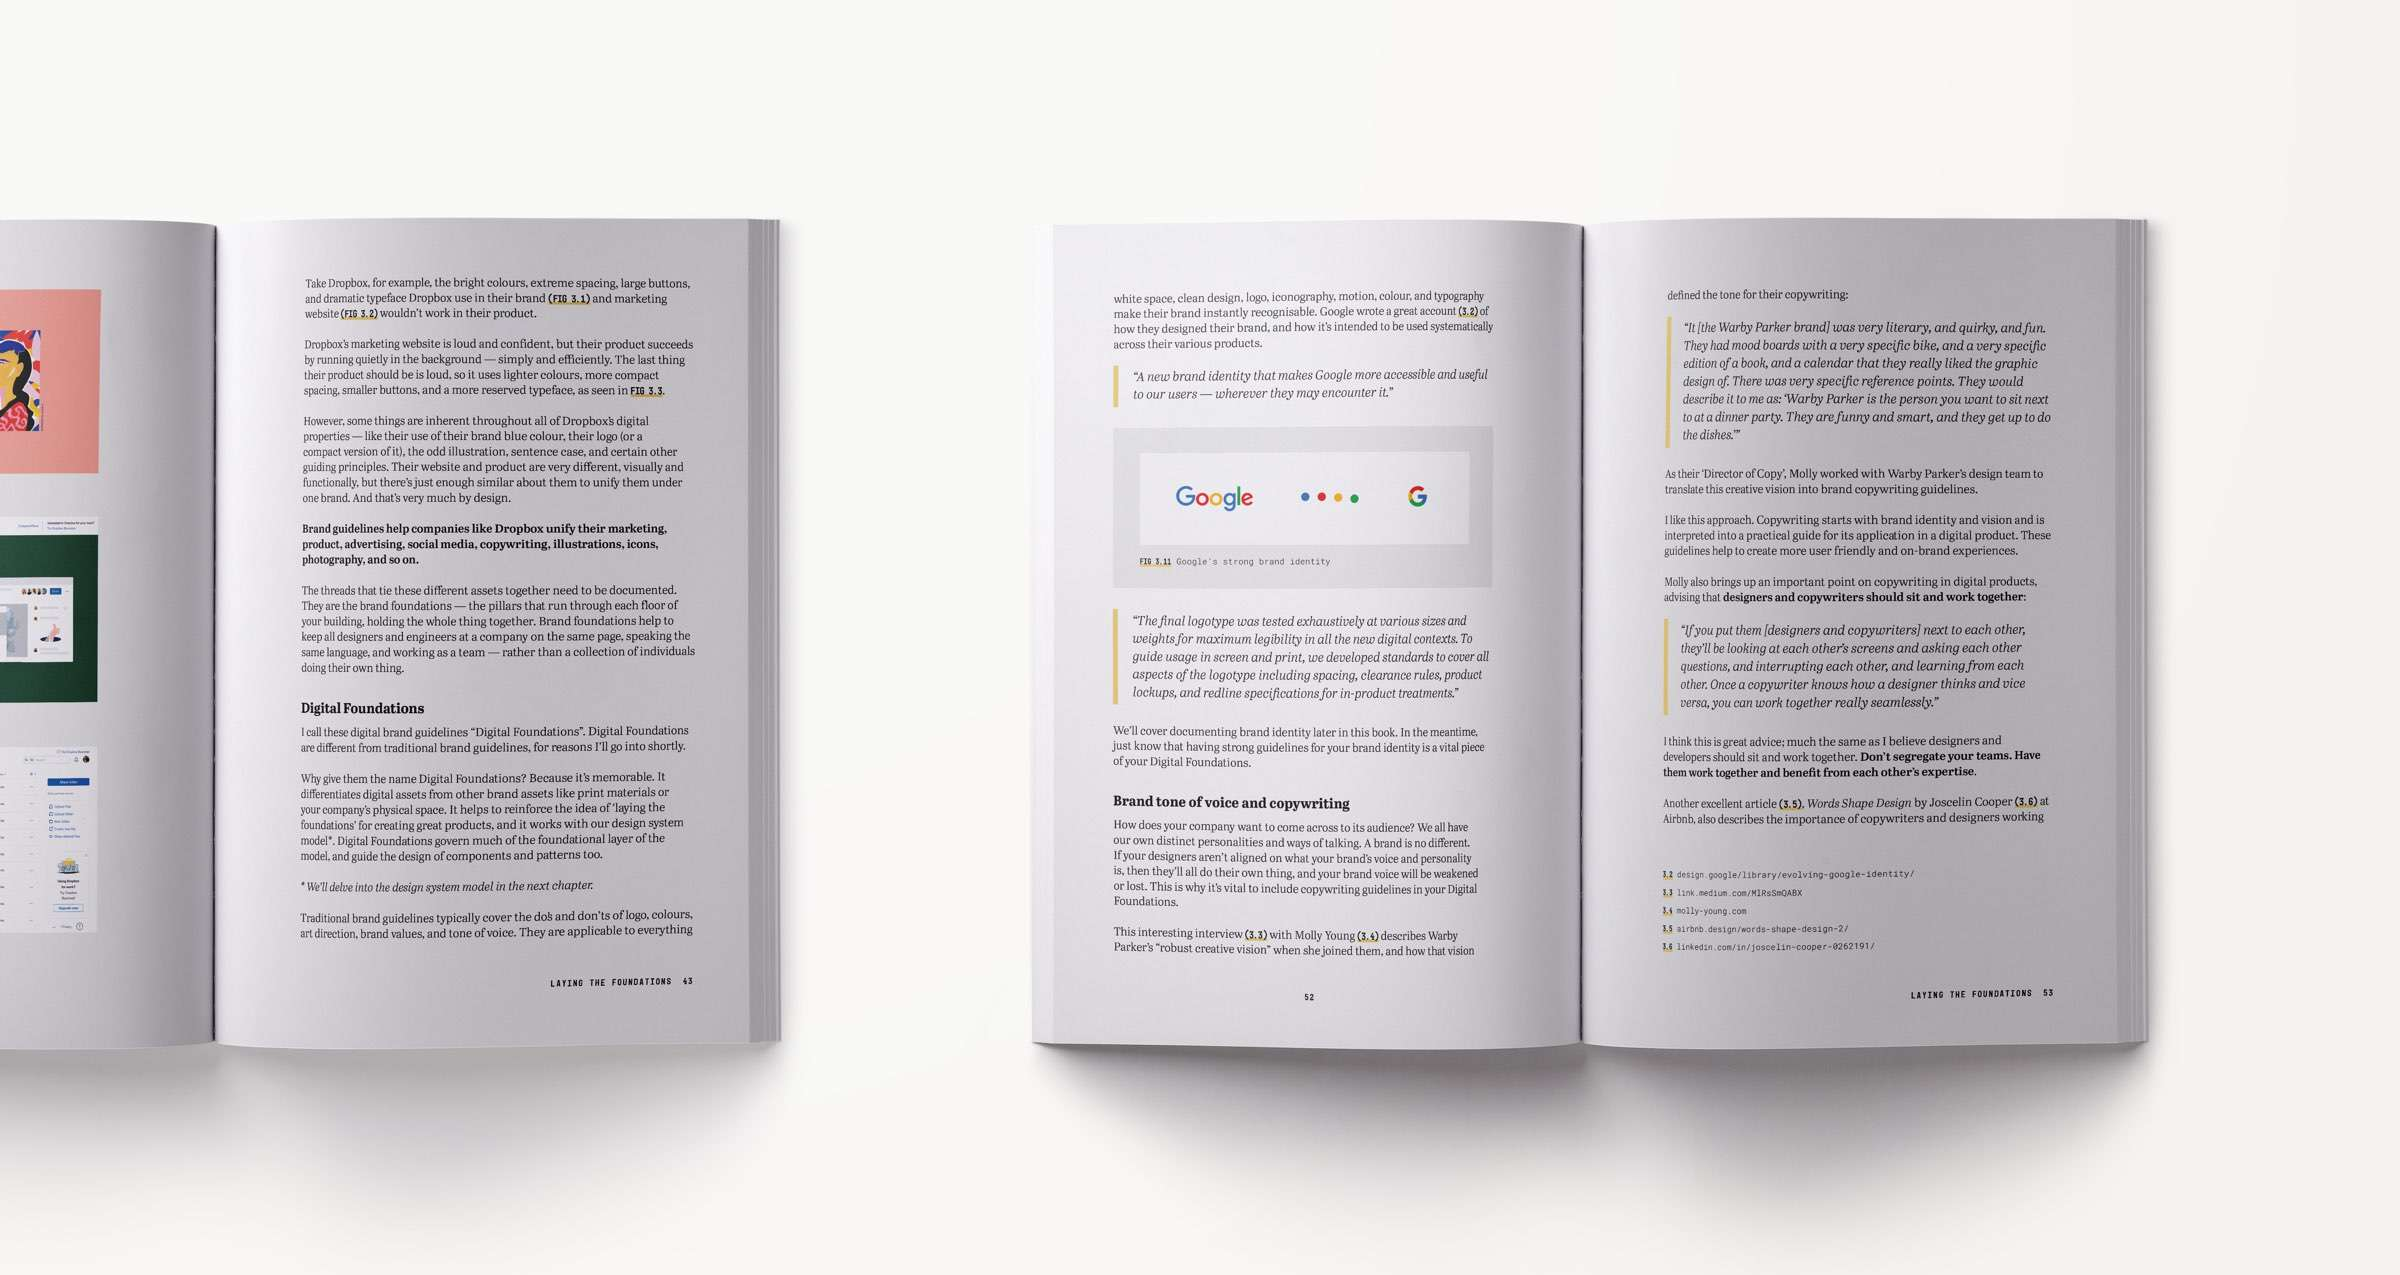 A design systems book spread showing content related to creating digital brand guidelines including brand tone of voice and copywriting